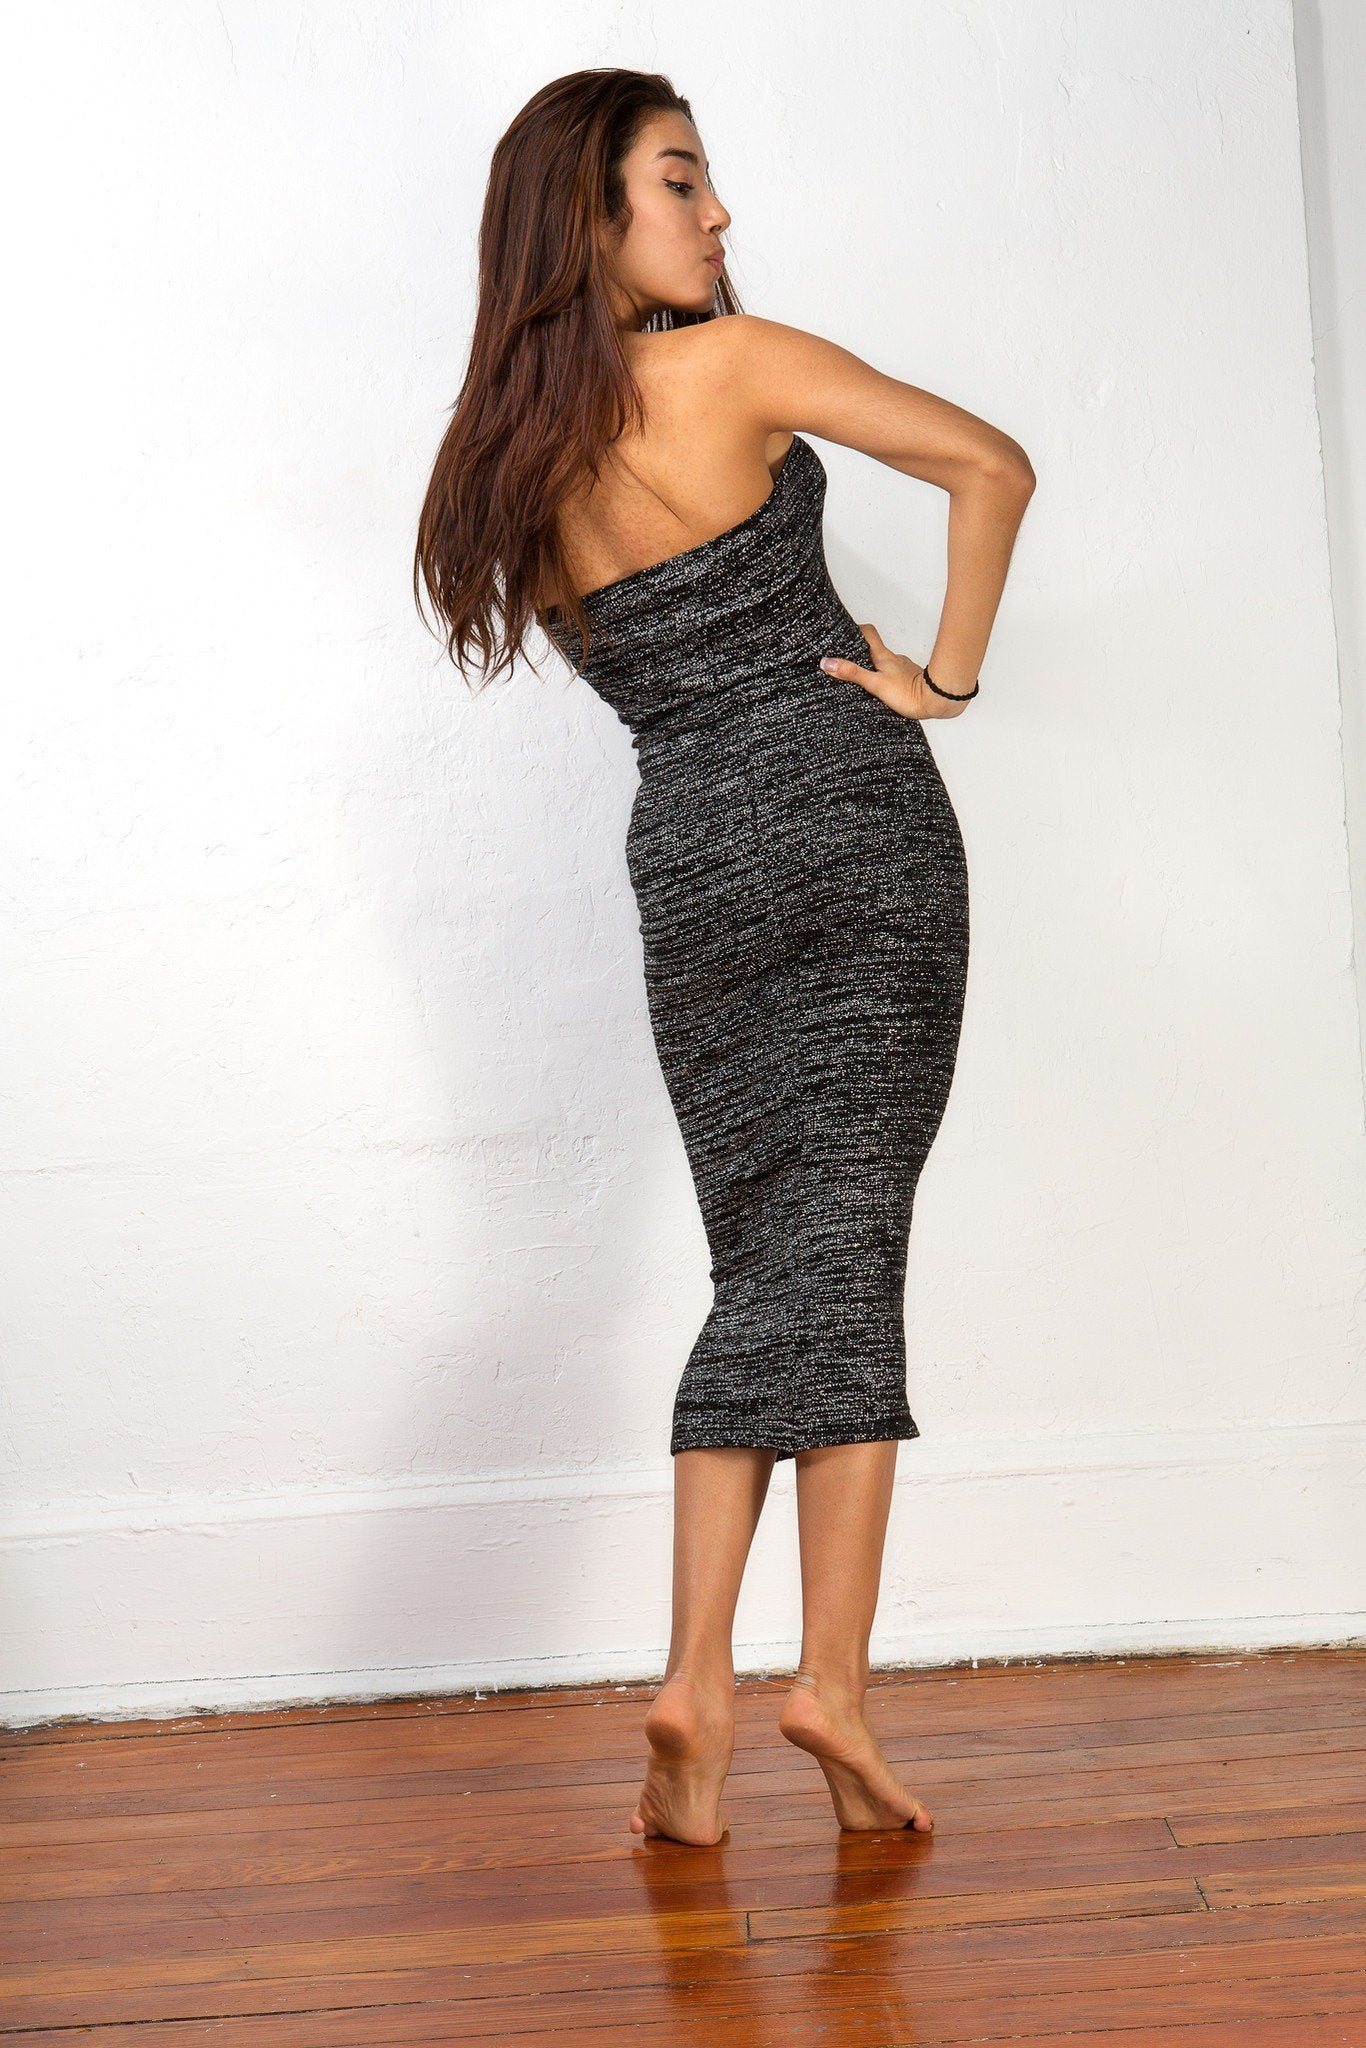 Maxi Dress / Calf Length Sweater Dress / Body Con Tube Dress @KDdanceNewYork #MadeInUSA - 5